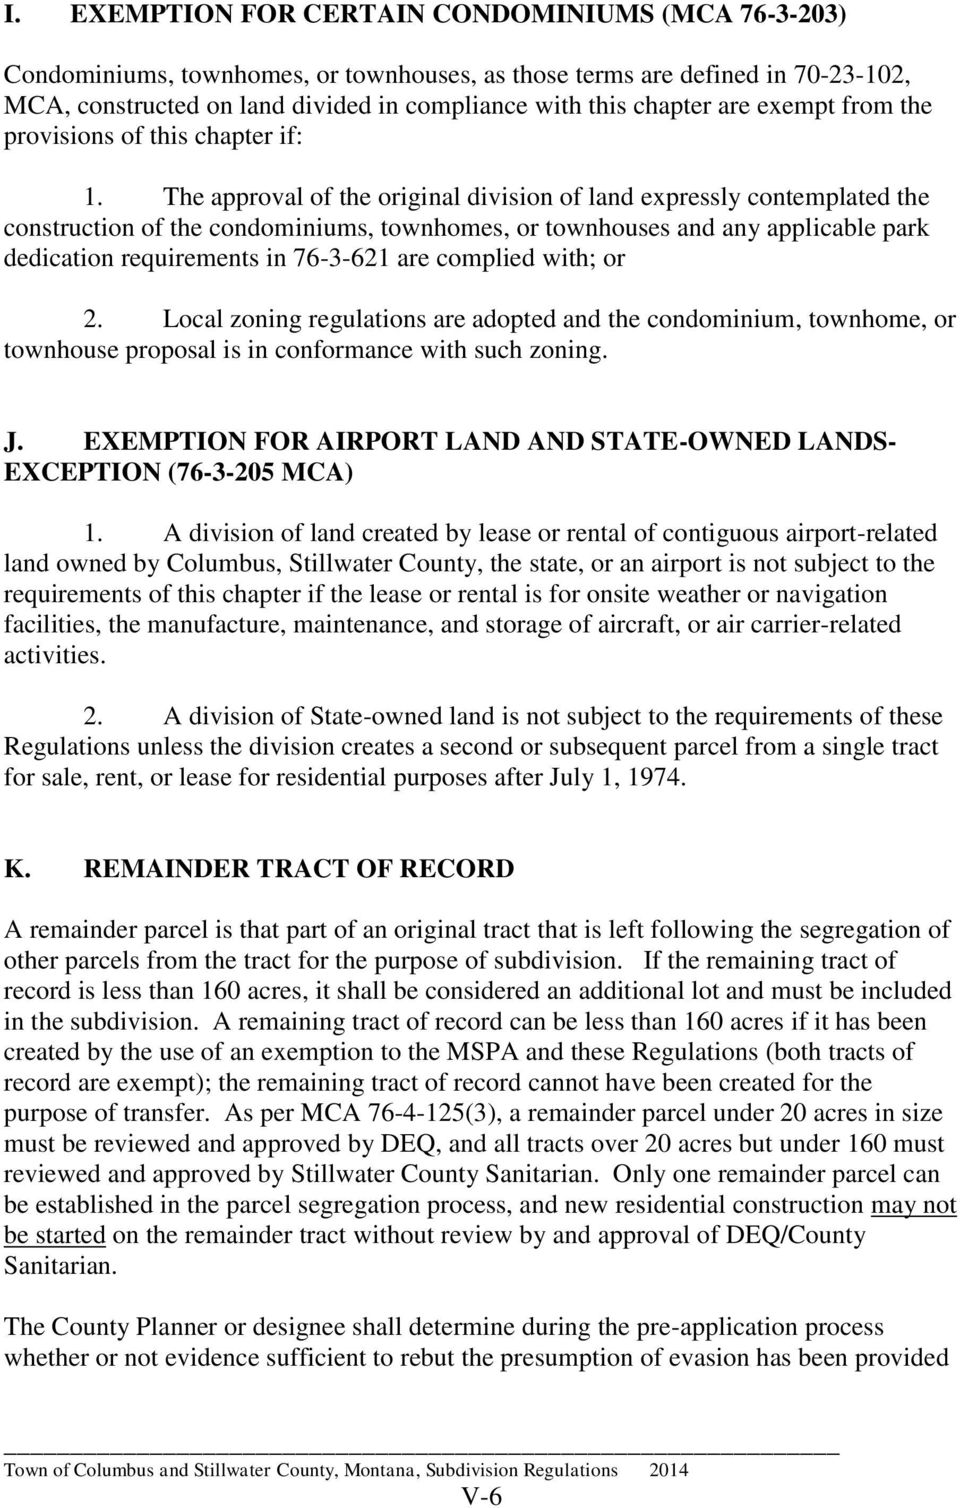 The approval of the original division of land expressly contemplated the construction of the condominiums, townhomes, or townhouses and any applicable park dedication requirements in 76-3-621 are